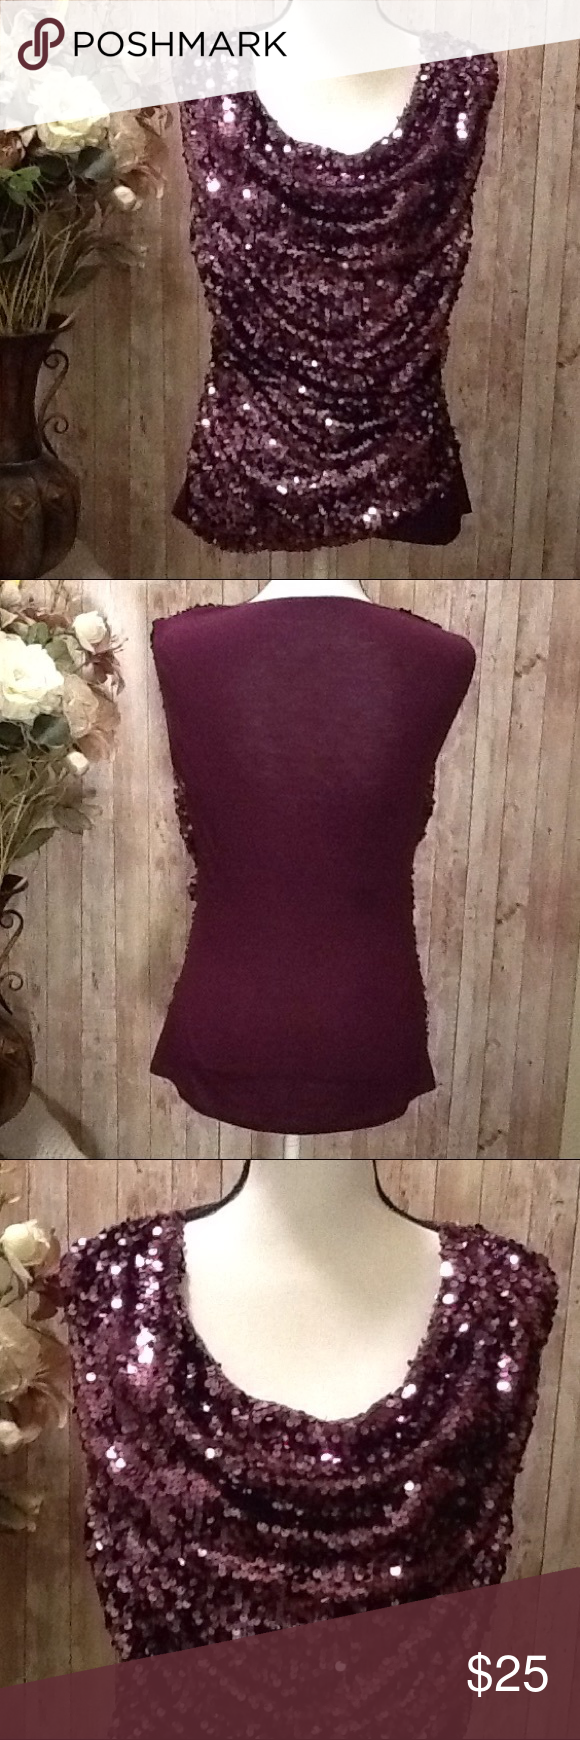 Tahari Sequin Top Blouse Size Small Purple NWOT Fancy top by Tahari, NWOT, size Small, beautiful color of dark purple/plum, retails for approx $100. Will look great wearing with a nice skirt or pair of pants or cute shorts!Looks better in person, lots of shiny sequins! Solid color on the back. Bundle to save 15% off your purchase of 2 or more items from my closet! T Tahari Tops